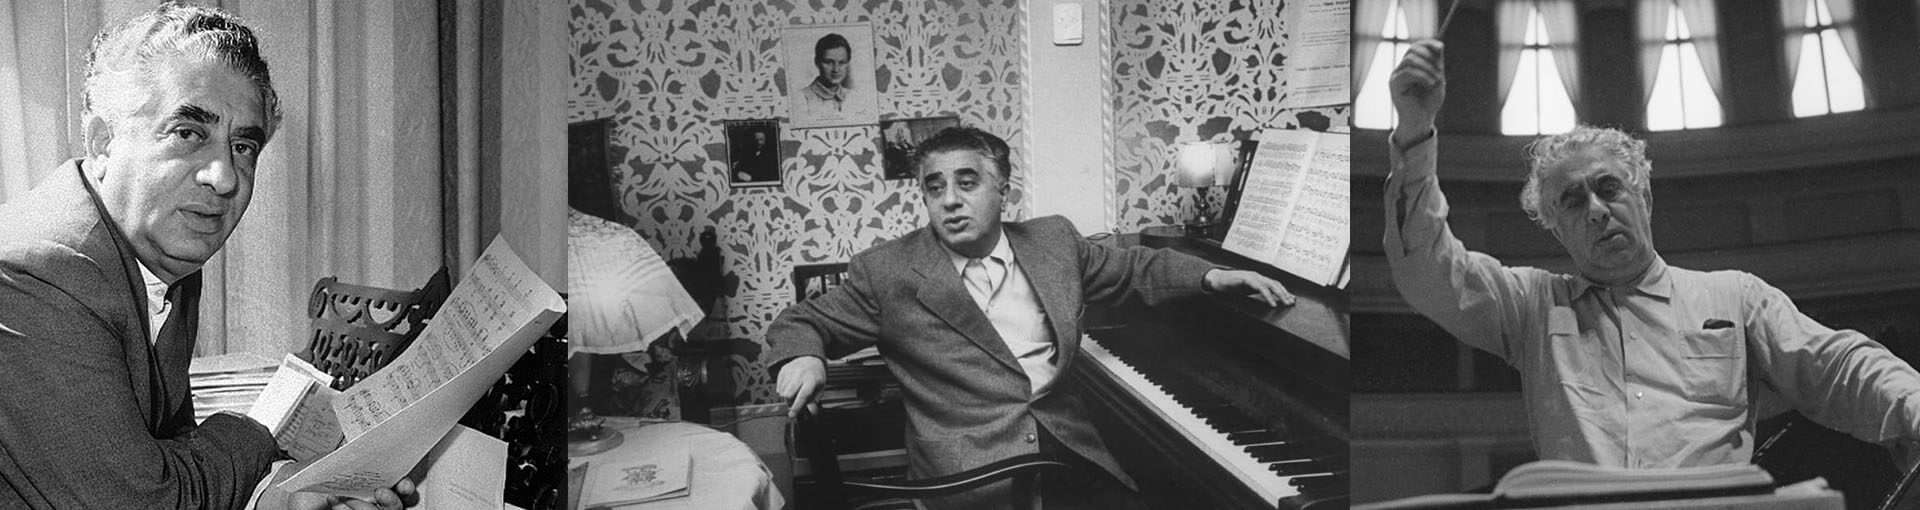 Aram Khachatryan - Life and Legacy of The Talented Composer